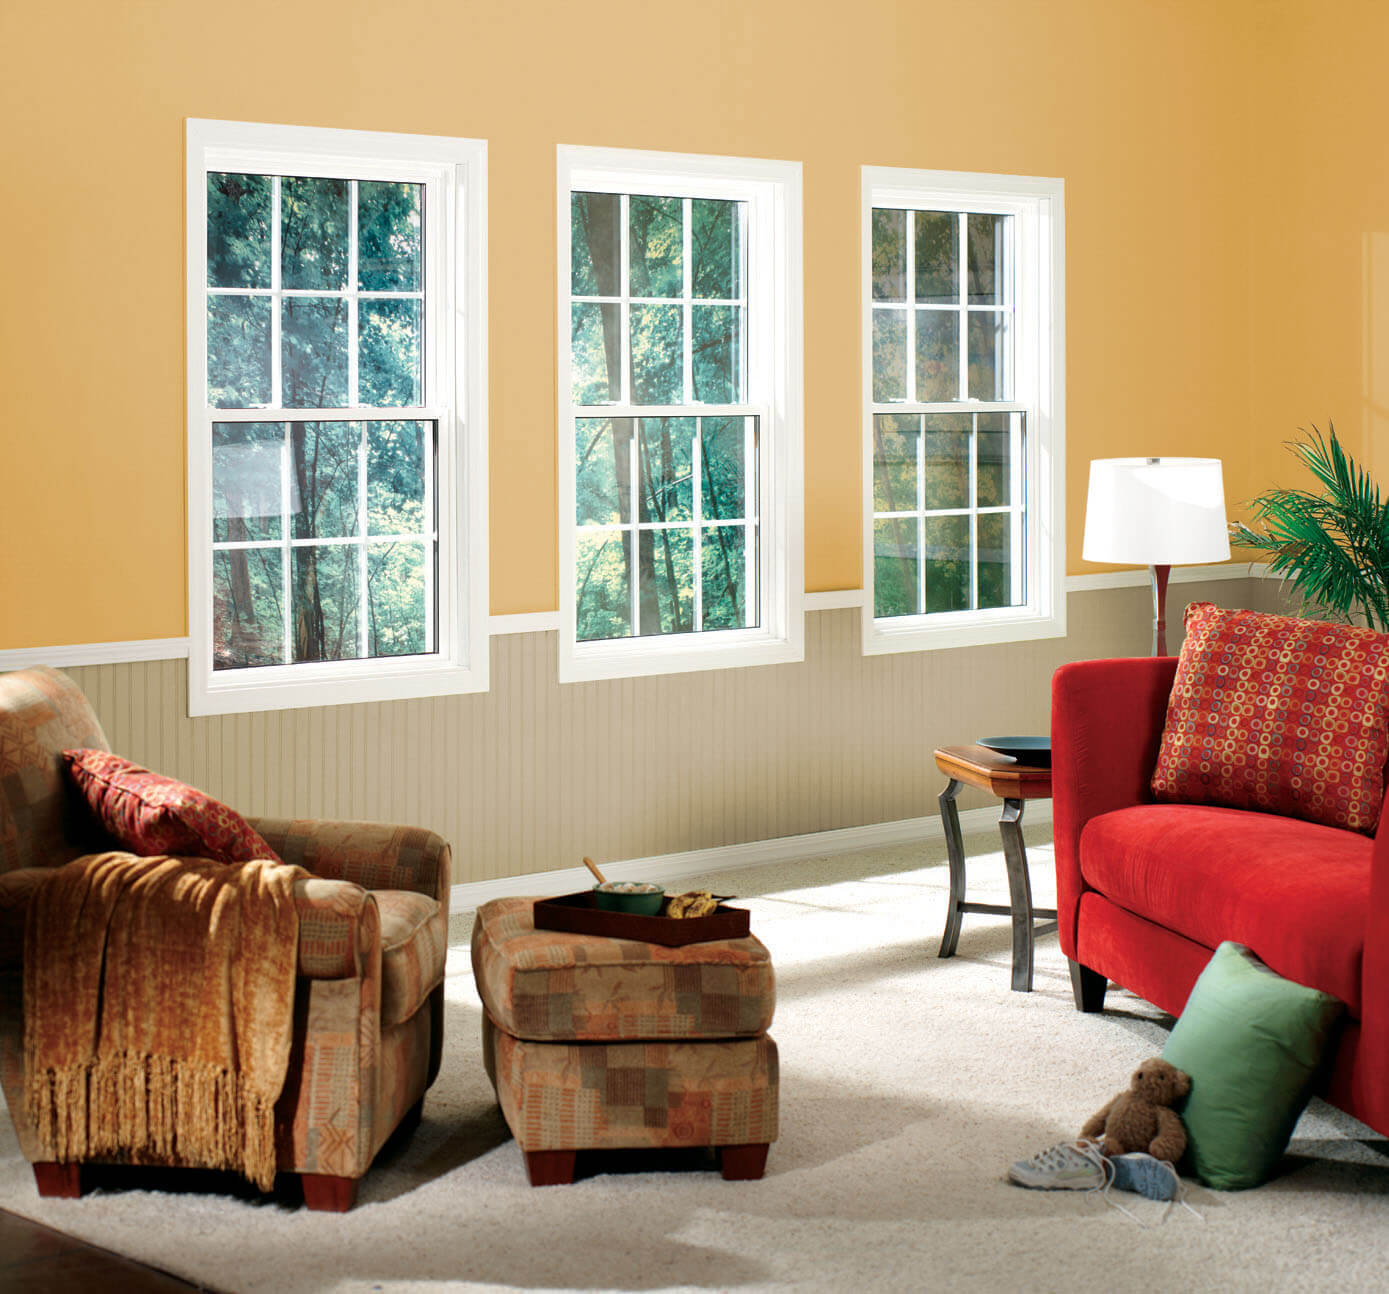 Single Hung Windows with time-honored window designs and a modern flair